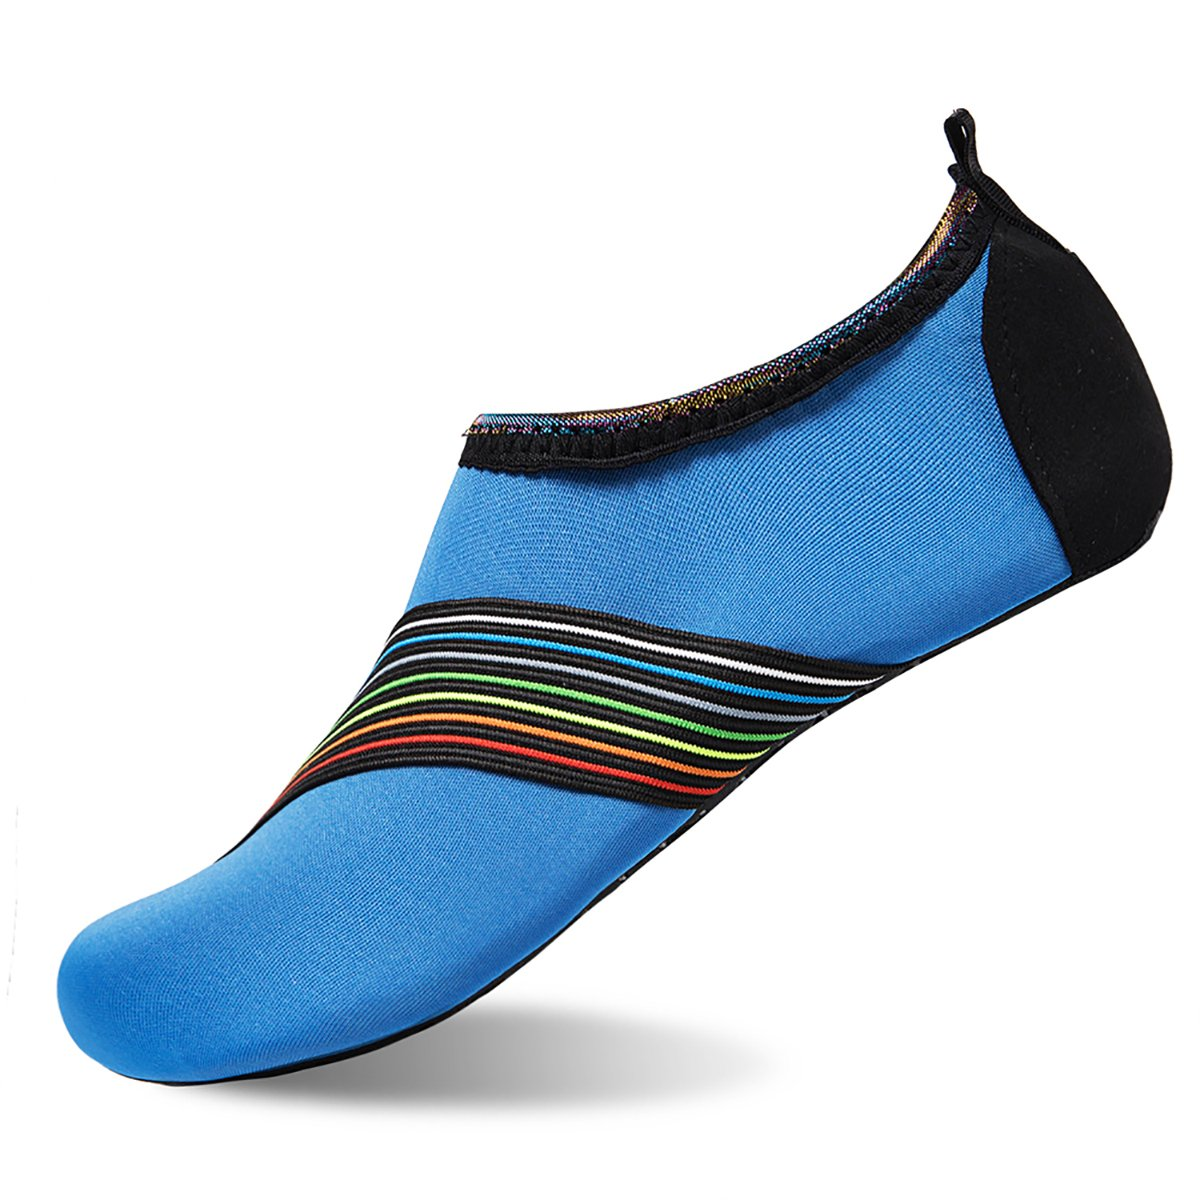 Womens and Mens Water Shoes Barefoot Quick-Dry Aqua Socks for Beach Swim Surf Yoga Exercise (Sd.Blue, S)